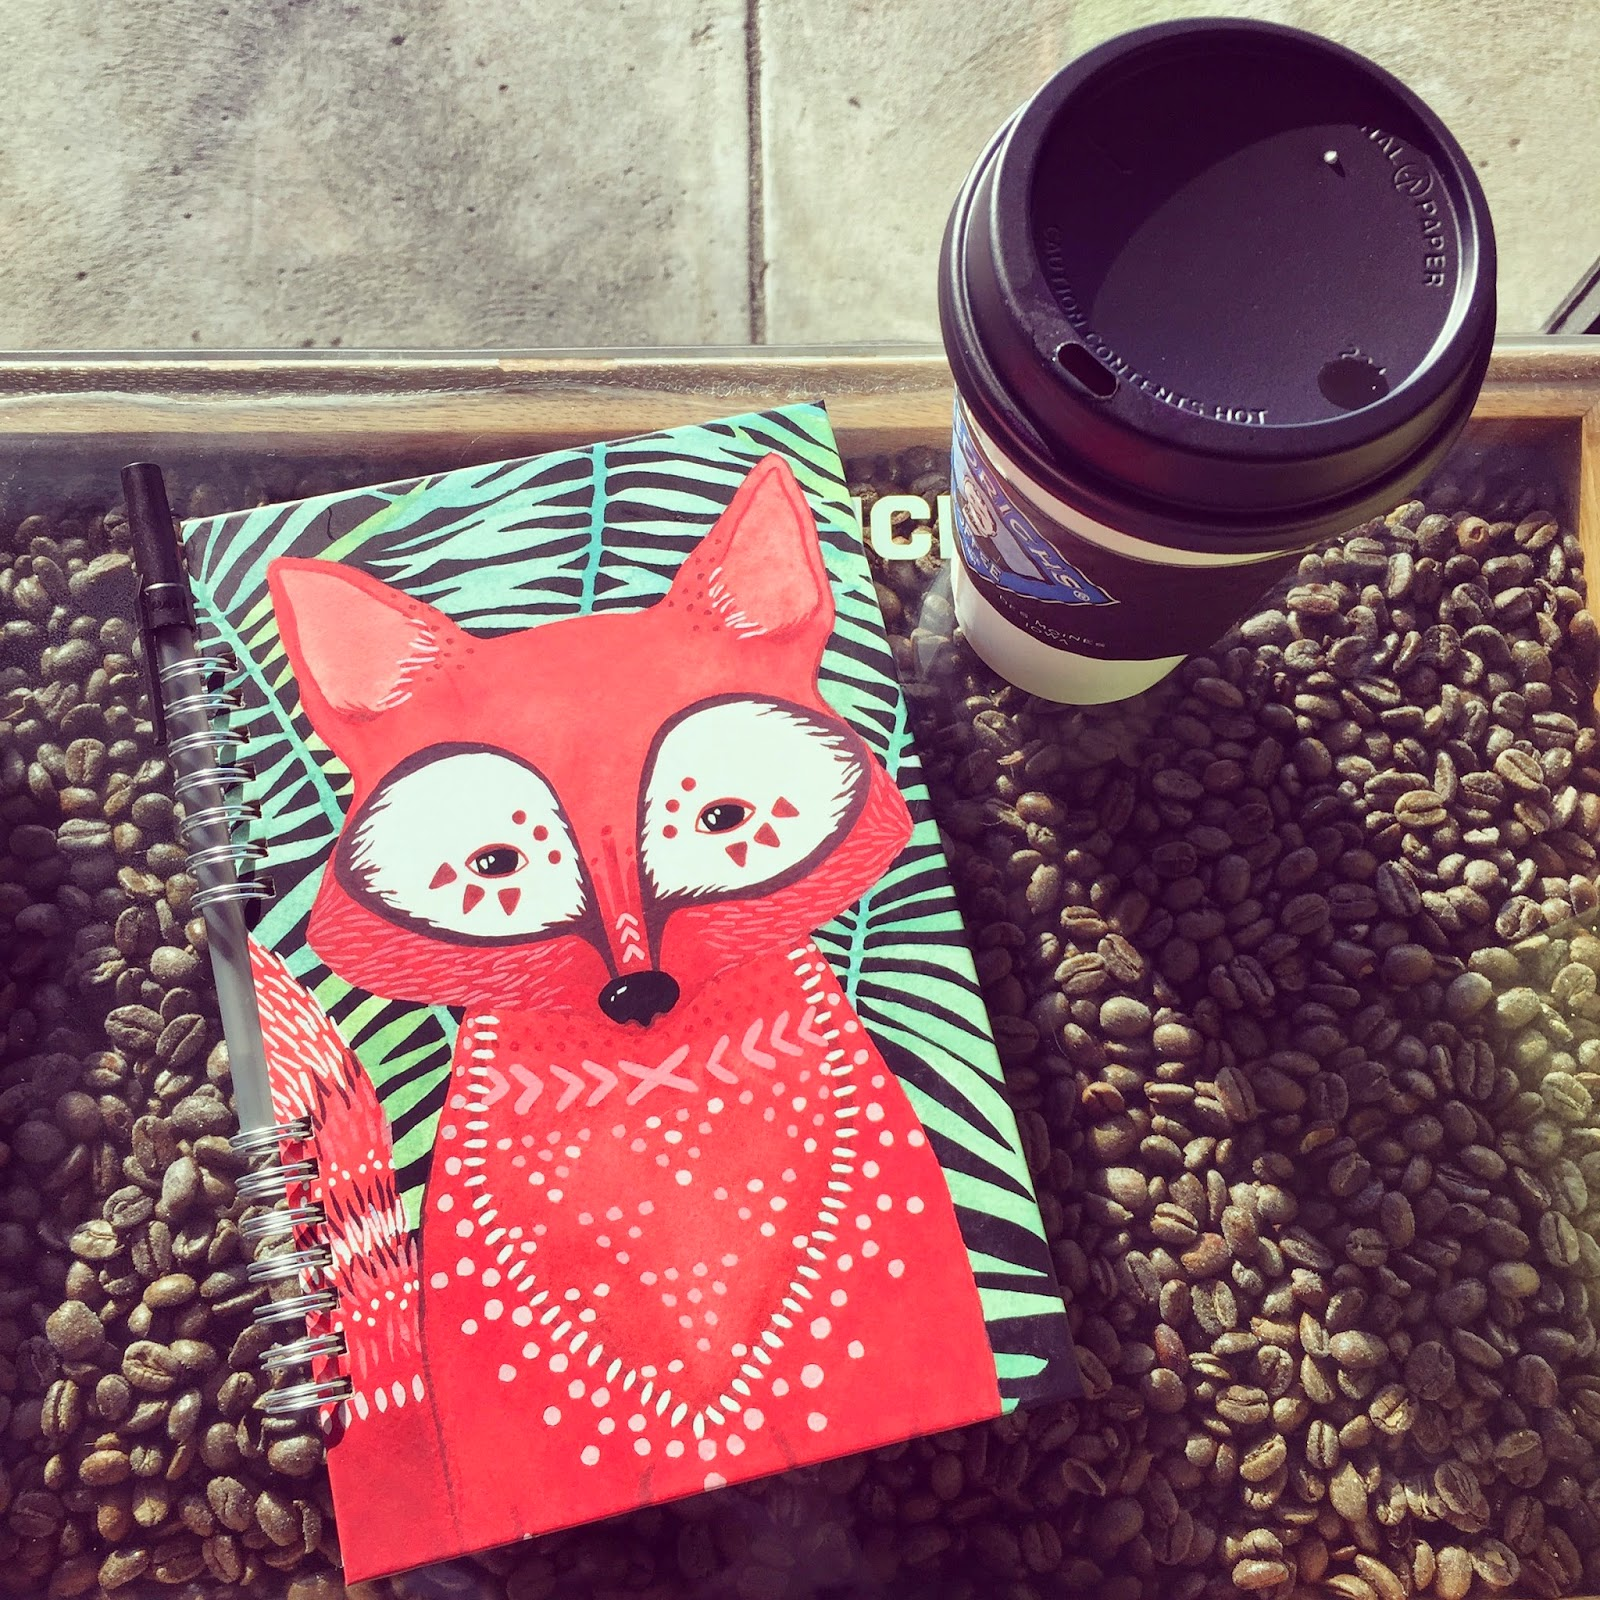 notebook and coffee at the cafe in spring